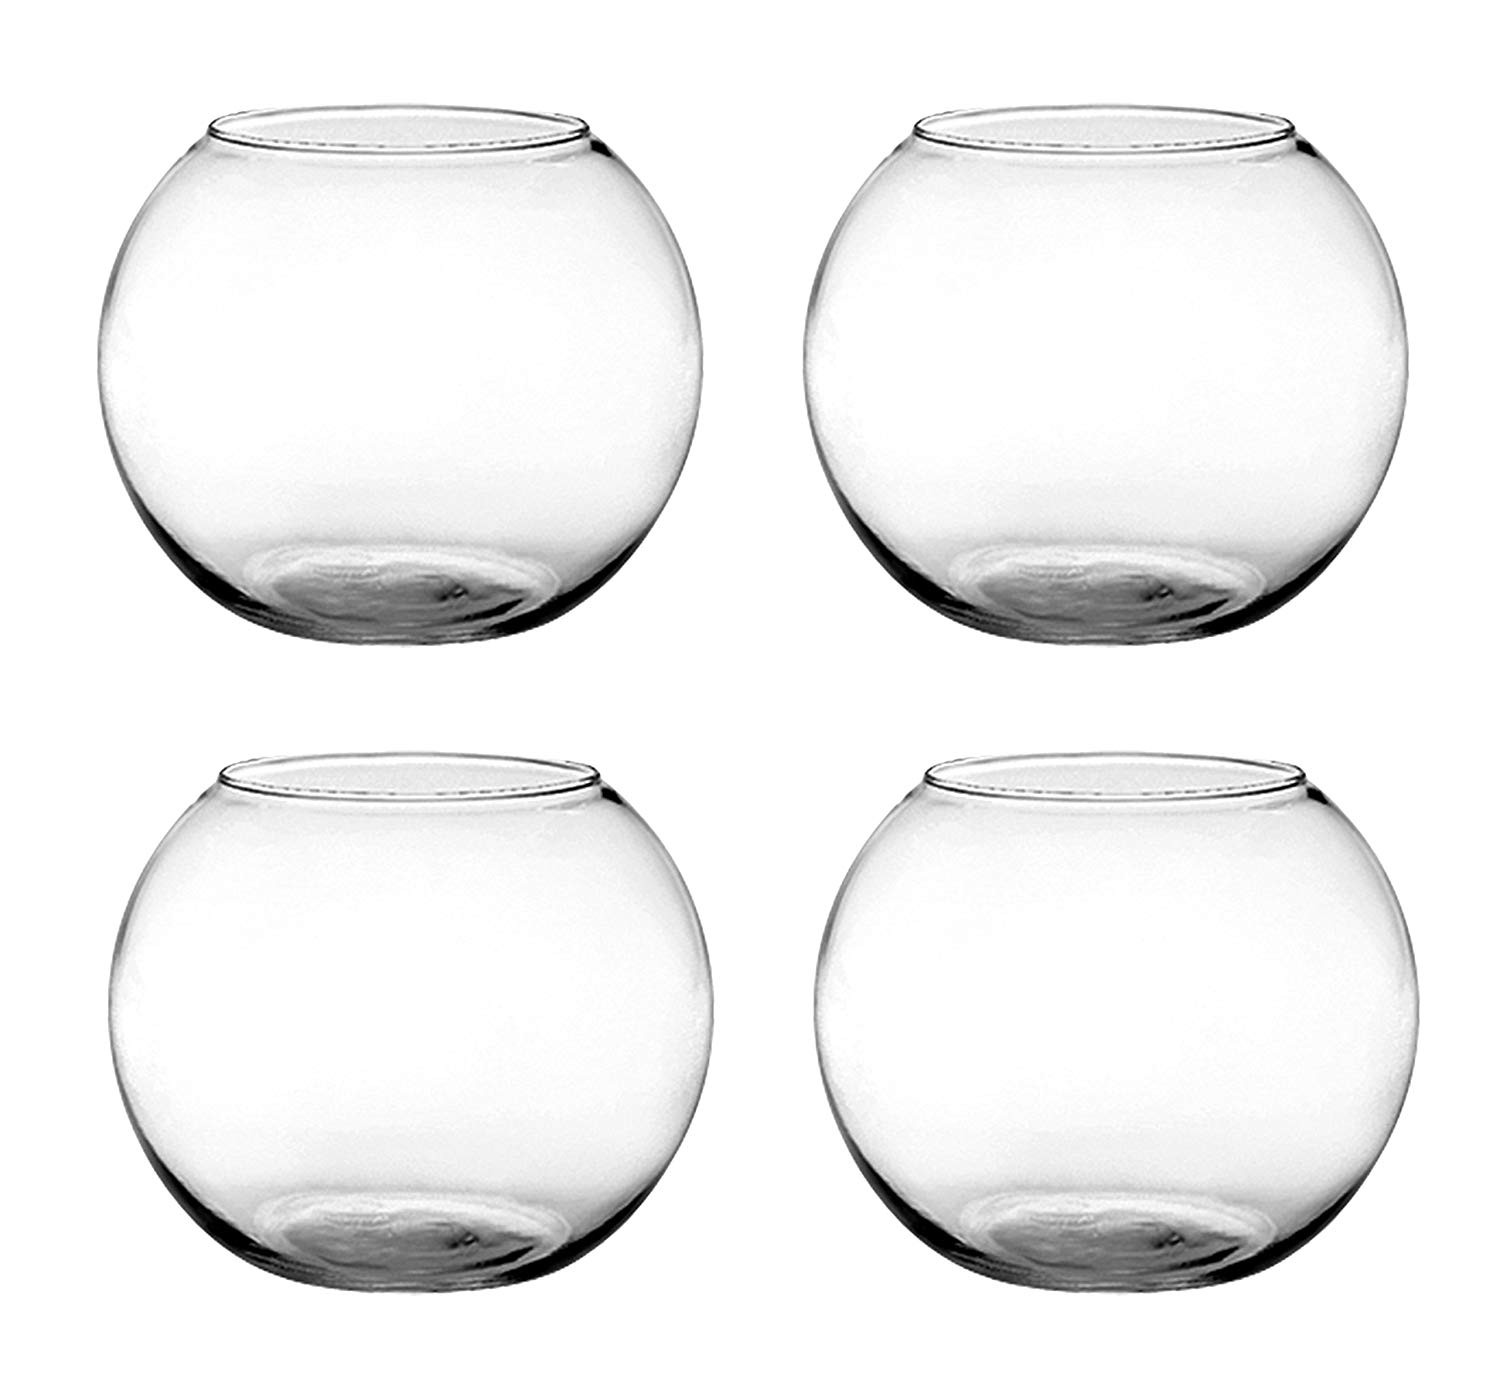 mini clear glass bud vases of amazon com set of 4 syndicate sales 6 inches clear rose bowl for amazon com set of 4 syndicate sales 6 inches clear rose bowl bundled by maven gifts garden outdoor